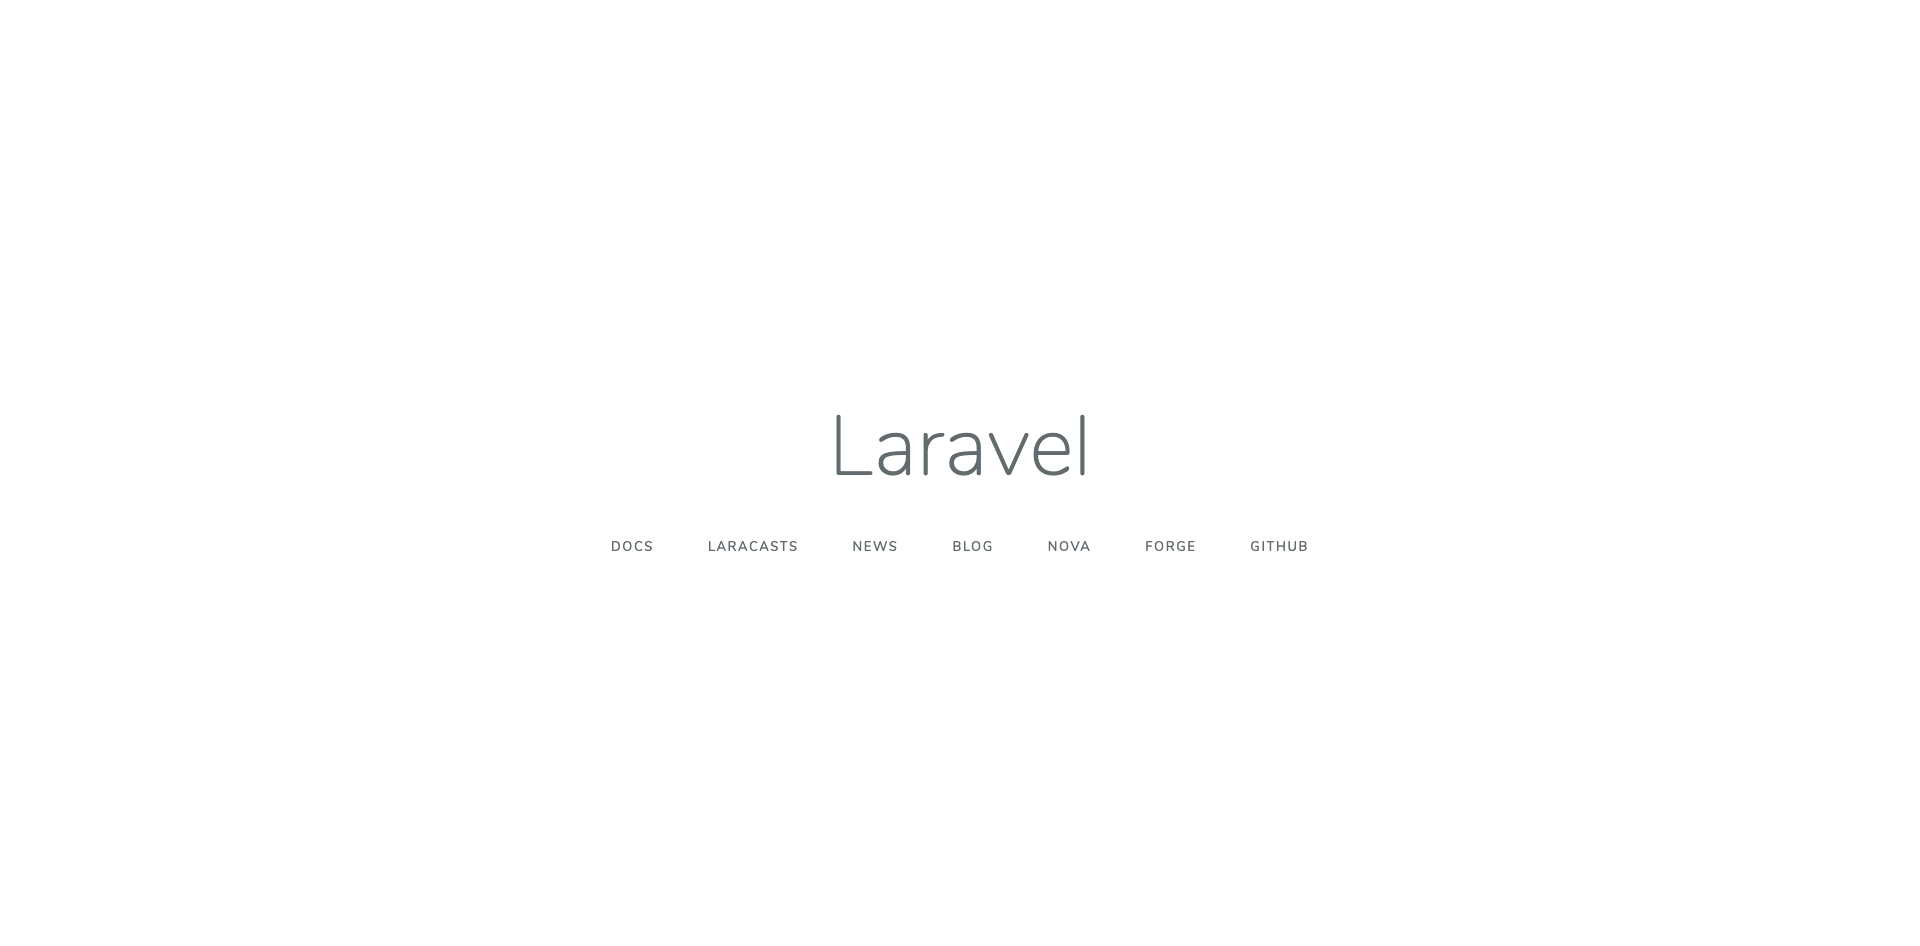 FireShot Capture 157 - Laravel - 192.168.10.10.png